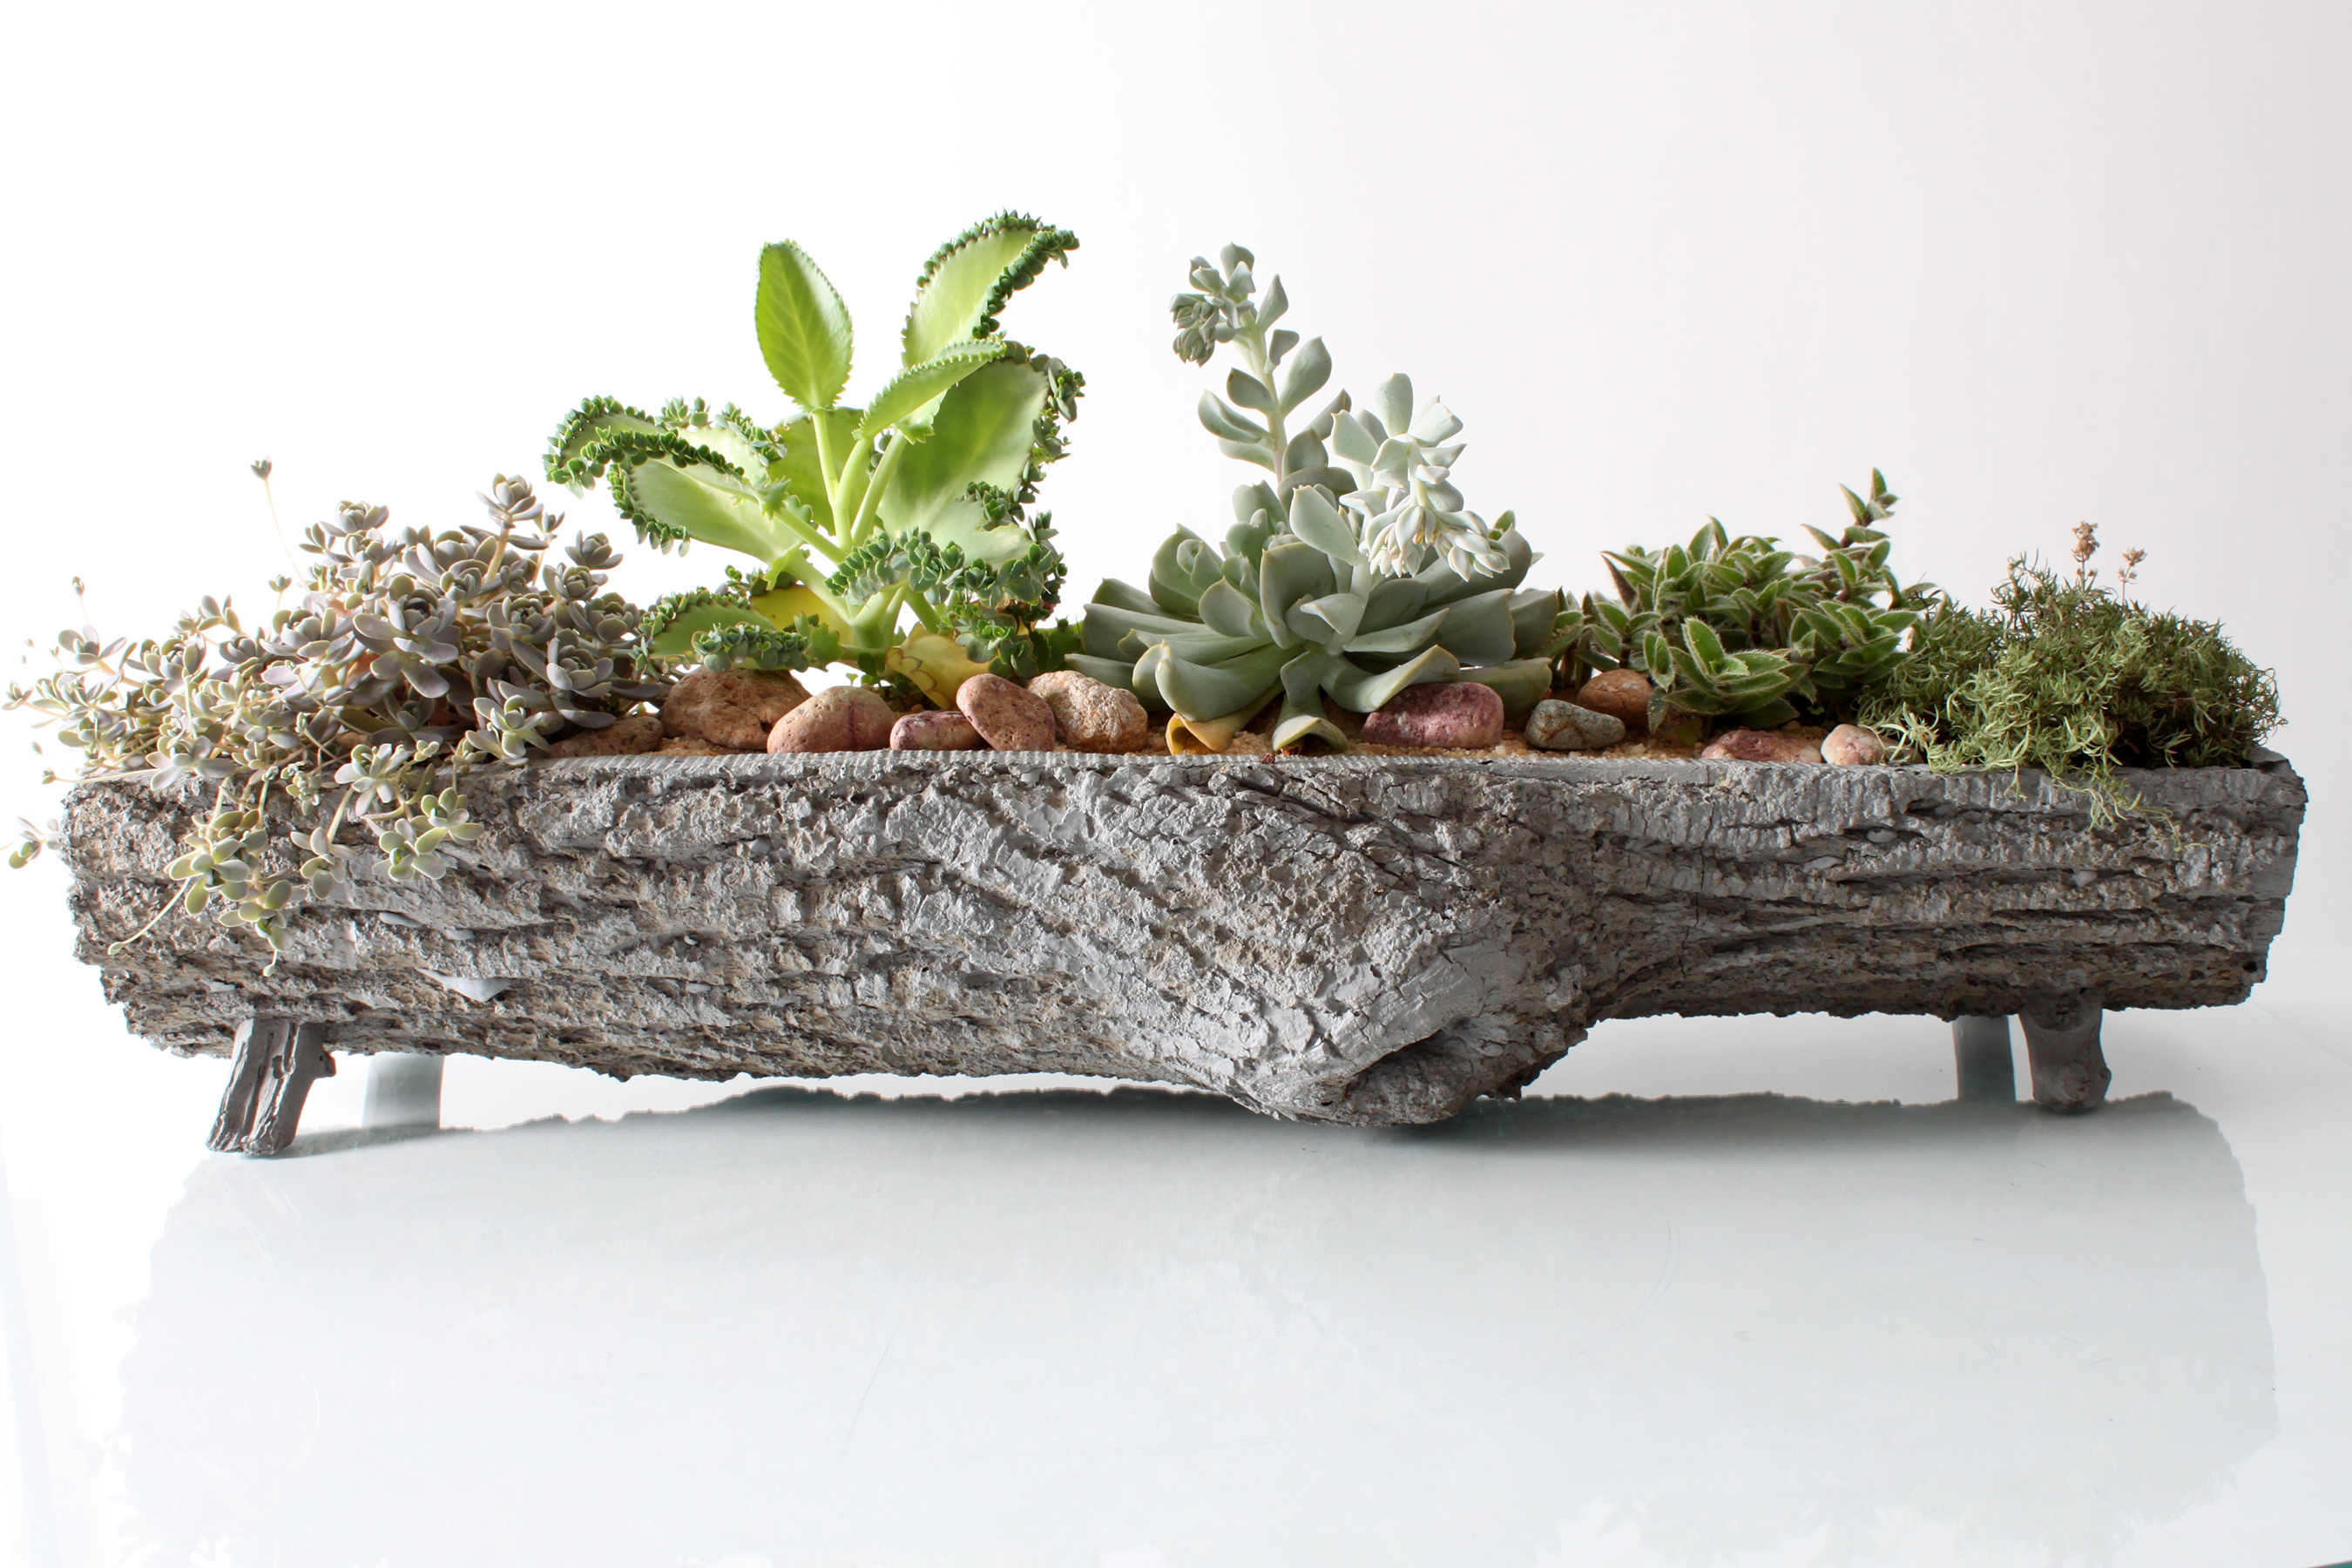 marketing wellness, healthy life-style, trends, eco-friendly, NativeCast, trough container